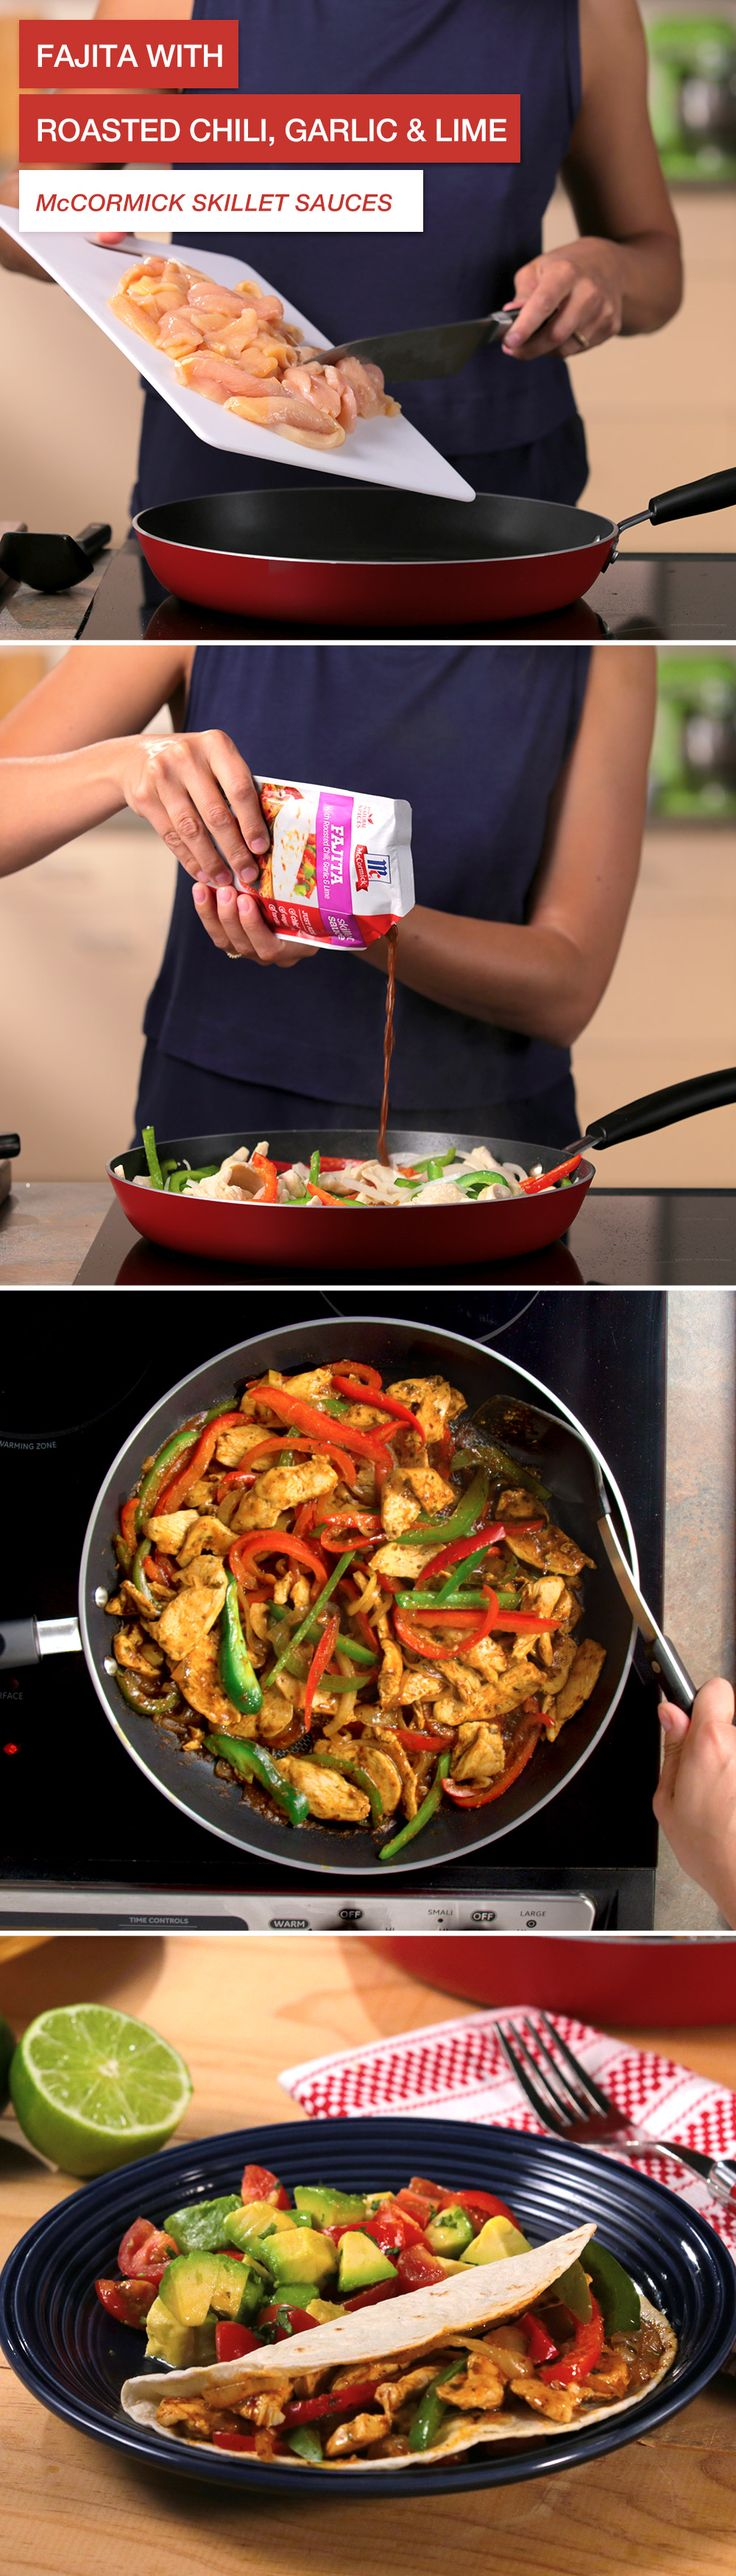 You'll only need 15 minutes to serve up flavorful fajitas with McCormick Skillet Sauces. Just tear, pour, cook and serve. No MSG. No artificial flavors. Natural spices. Because pure tastes better. Click through for recipe details!